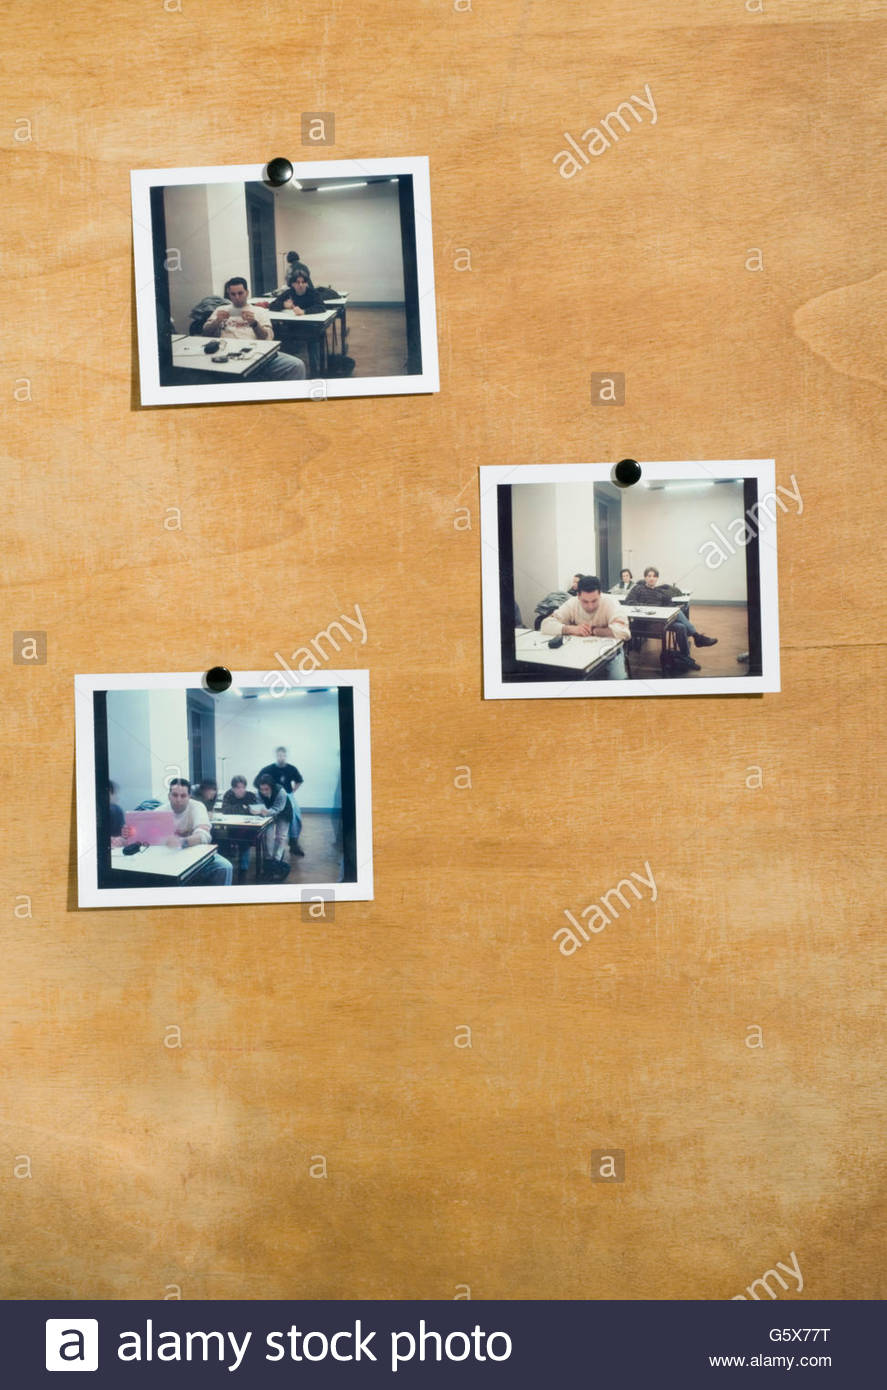 pinned polaroids of people at school - Stock Image